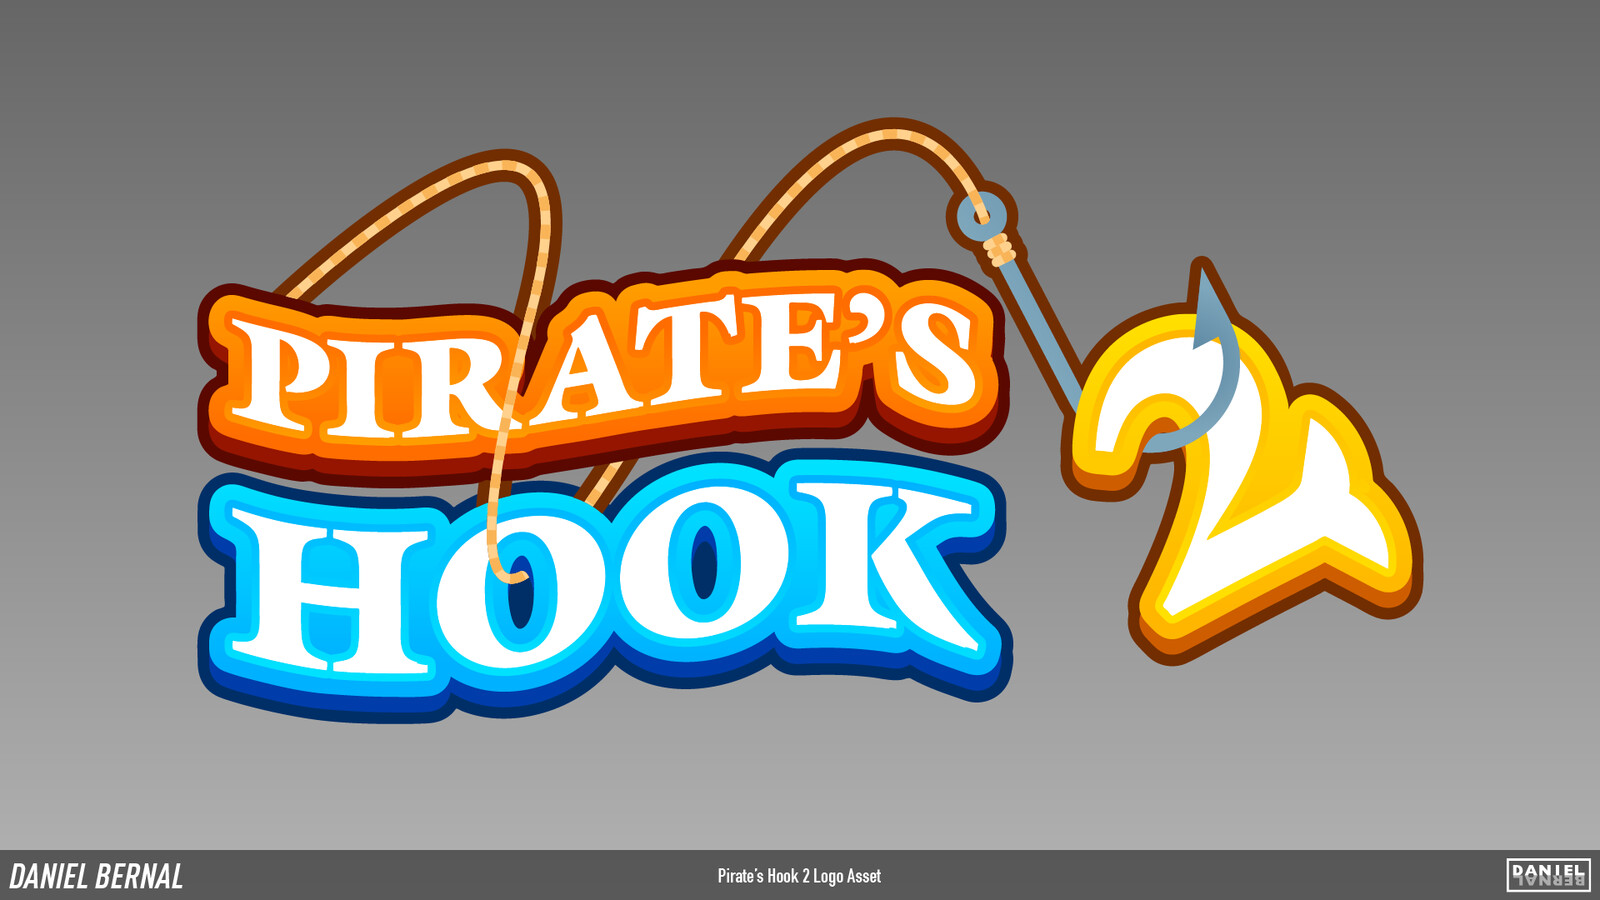 Pirate's Hook 2 Logo Asset